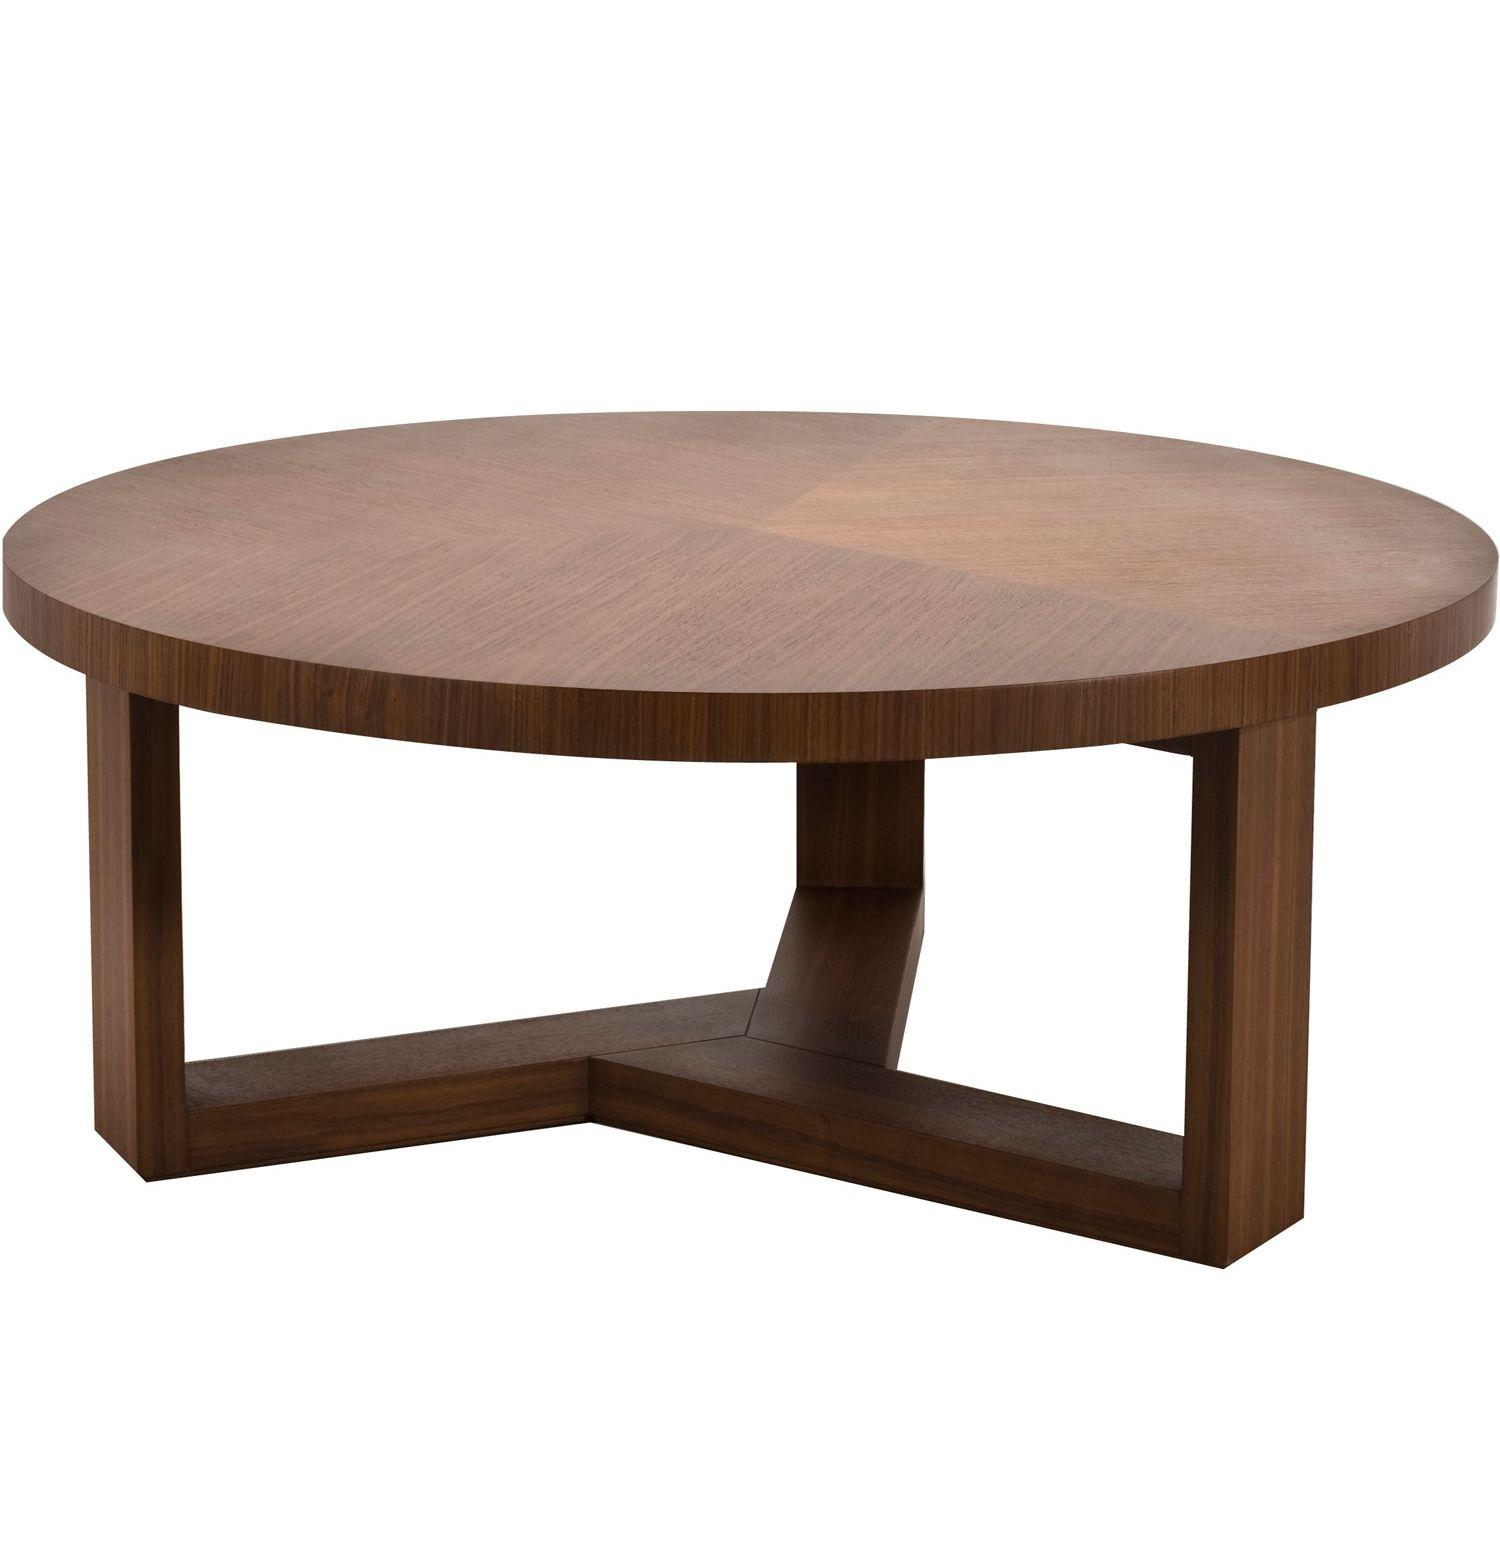 Simple But Awesome Wooden Round Coffee Table Idea With Round Wood Top And Three Wood Legs Idea Round Wood Coffee Table Round Coffee Table Coffee Table Wood